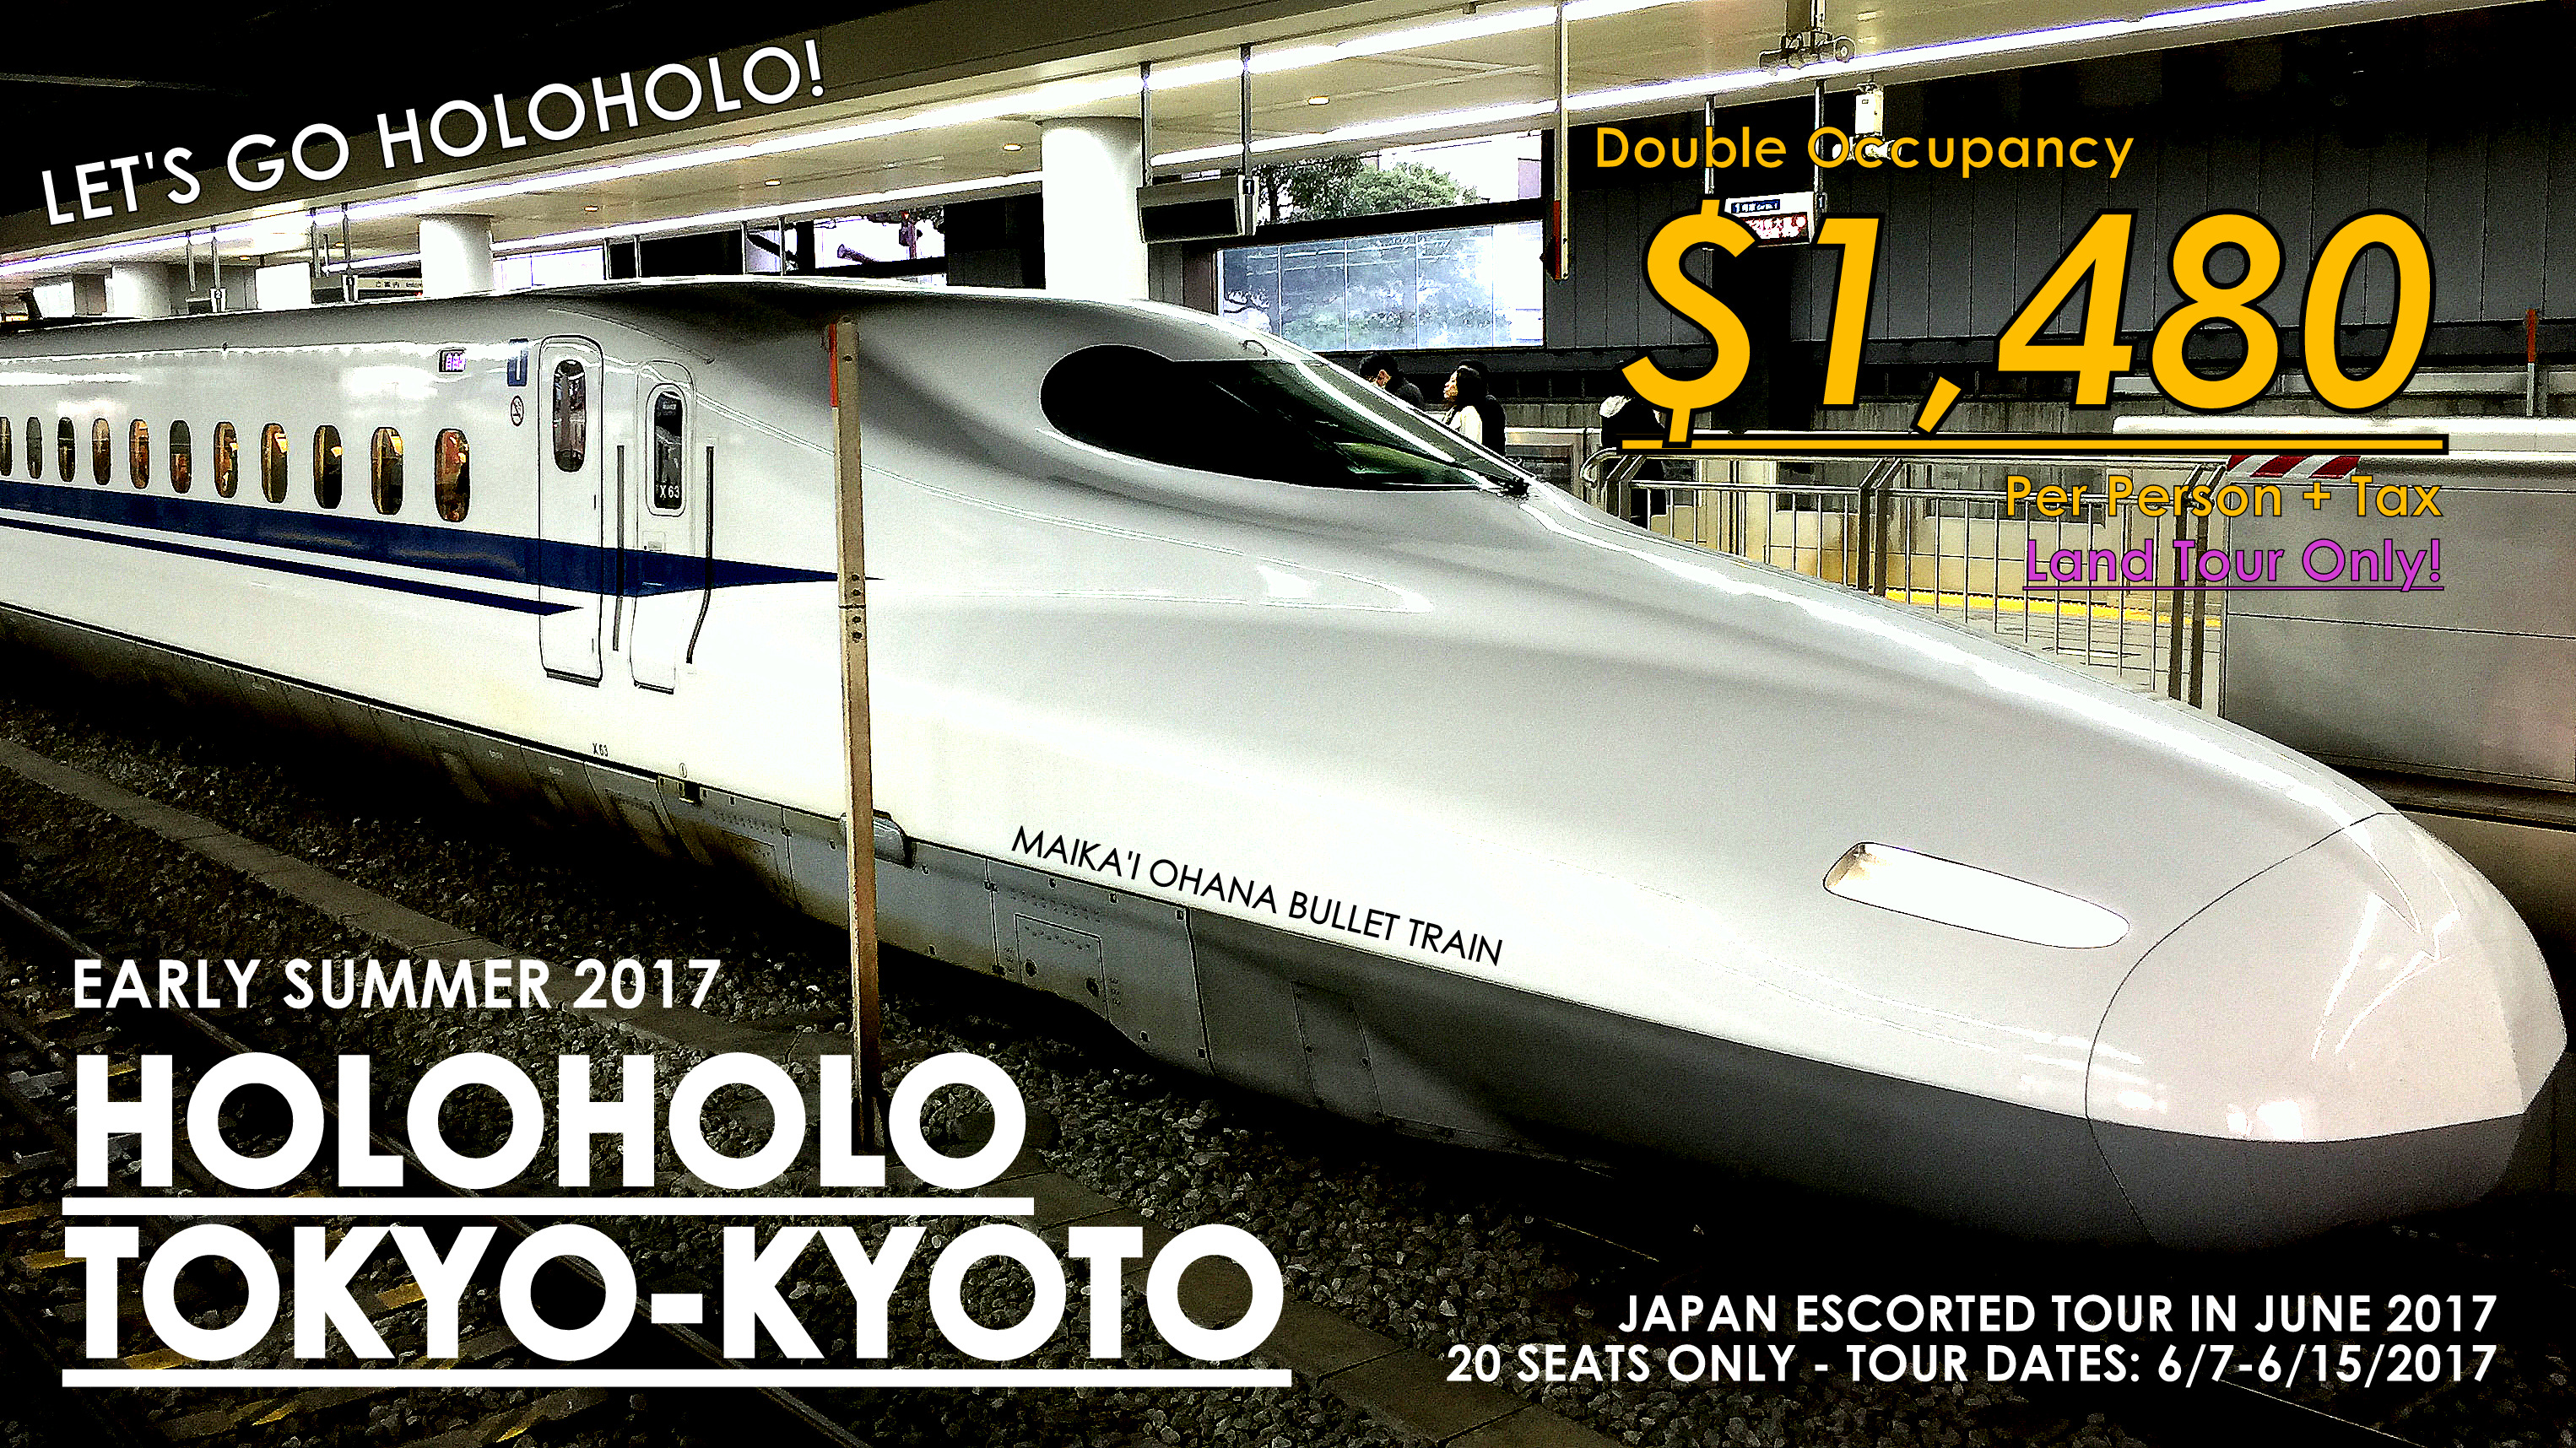 Early Summer 2017 - Holoholo Adventure in Tokyo & Kyoto (& Osaka)! (Tour Dates: 6/7/2017 - 6/15/2017)